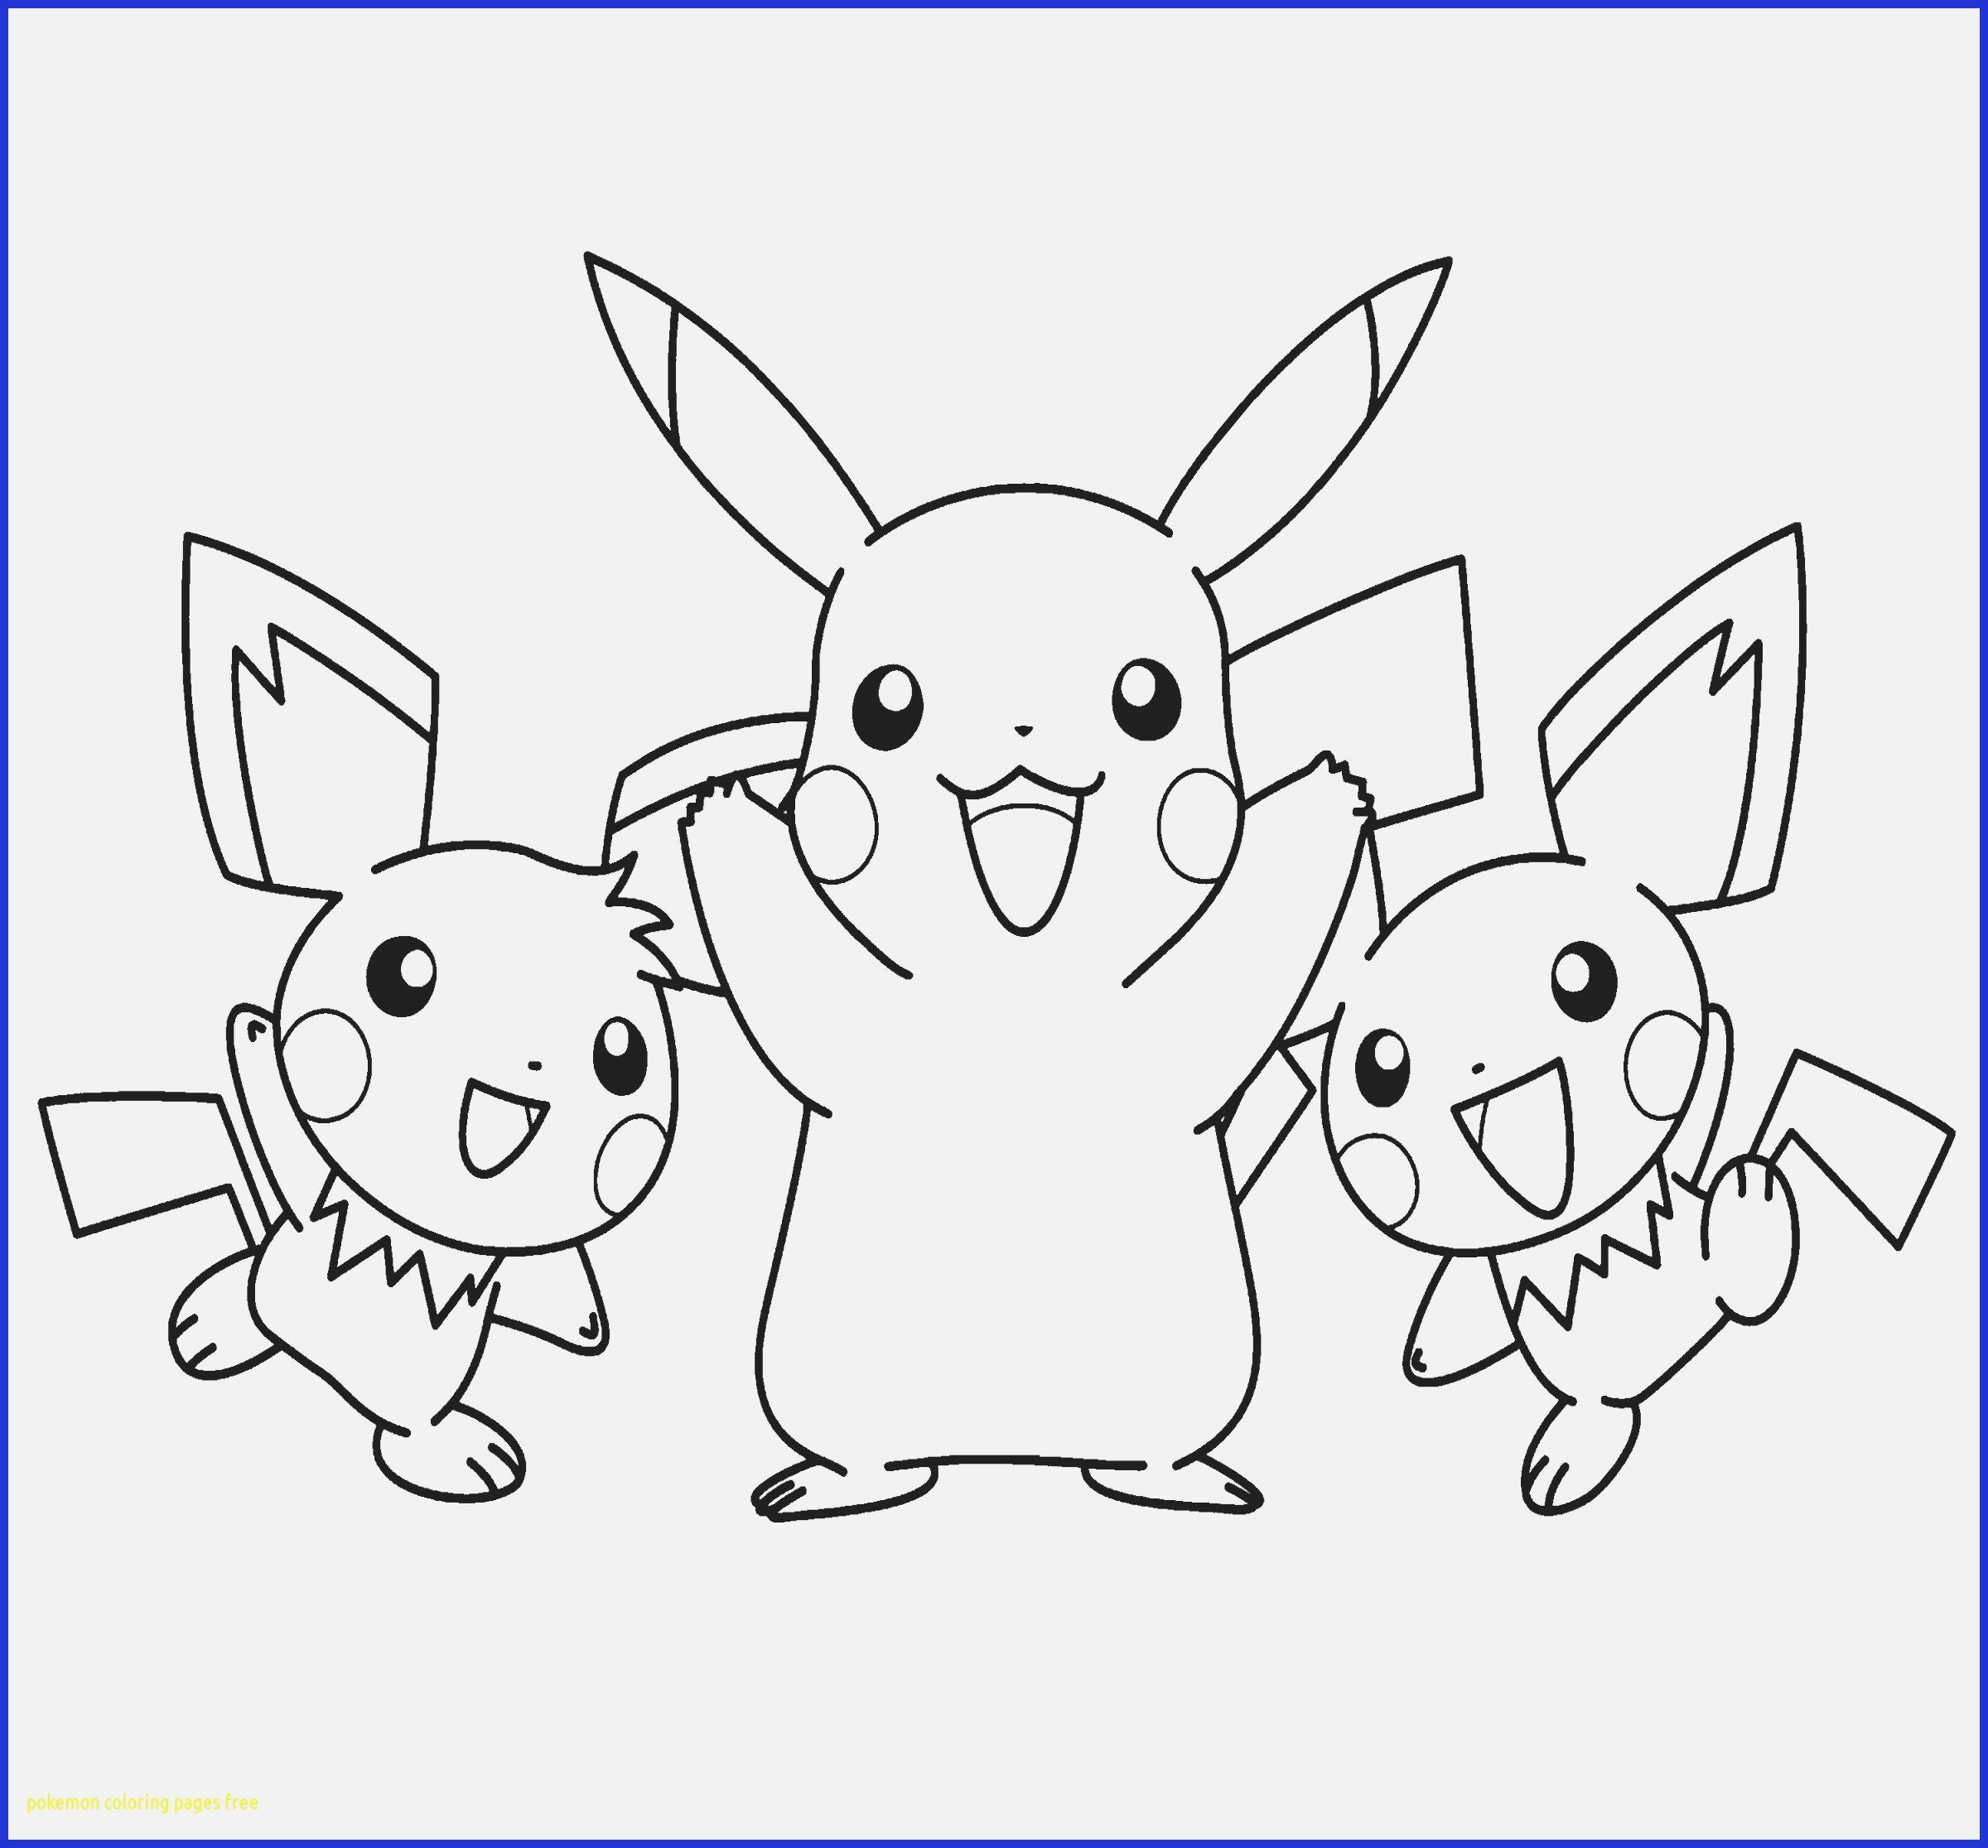 Printable Pokemon Coloring Pages Best Of Coloring Pages Pokemon